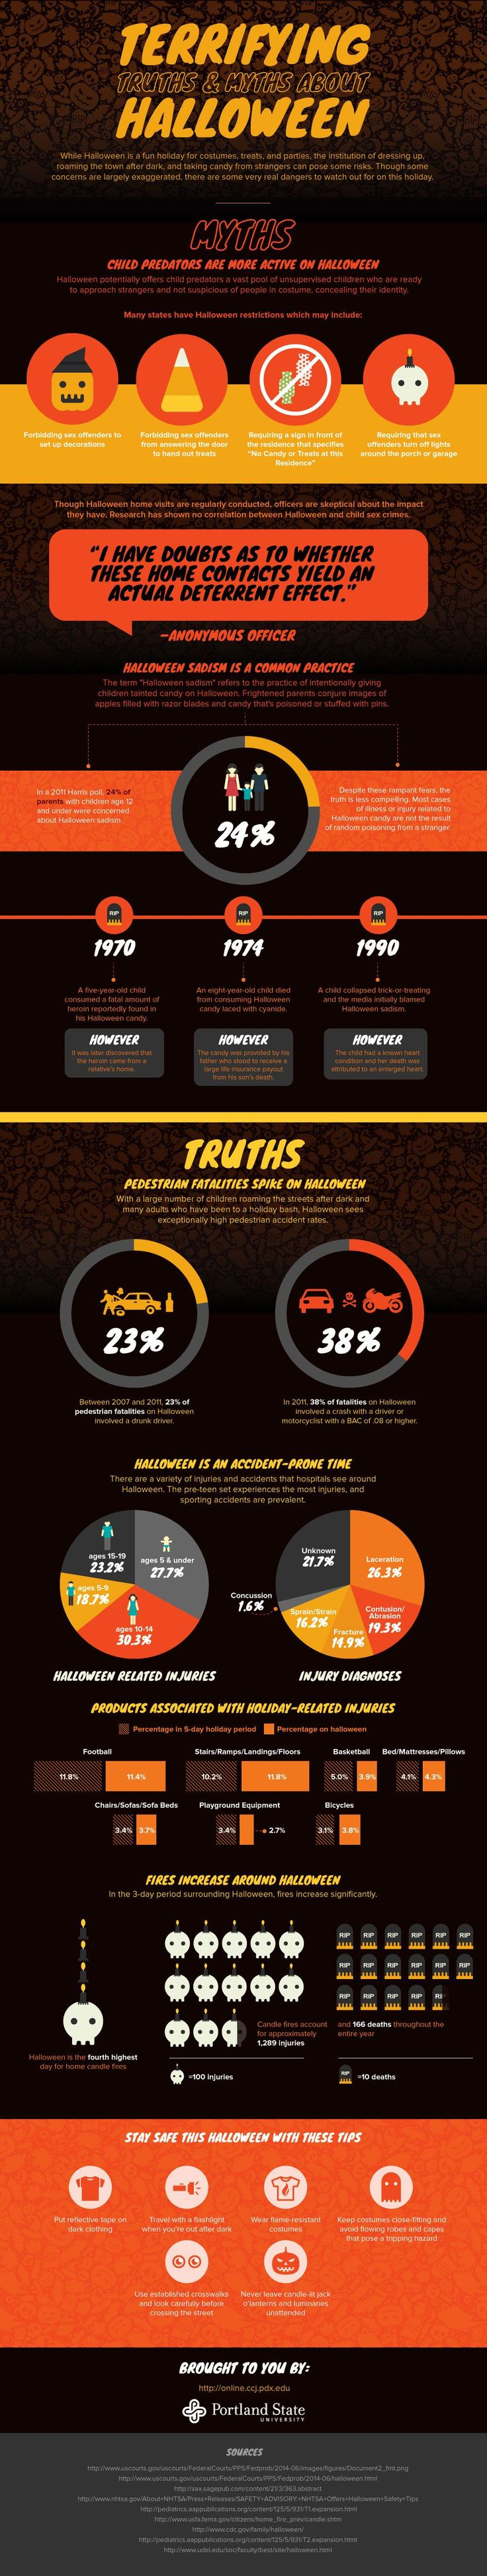 There are countless 'cautionary tales' out there revolving around Halloween, and we've all been told those stories by parents, teachers and other figures that looked after our well-being in our formative years. Tales such as razor blades in candy bars and increases in pedestrian fatalities encouraged us to be safe on Halloween night, so weRead More